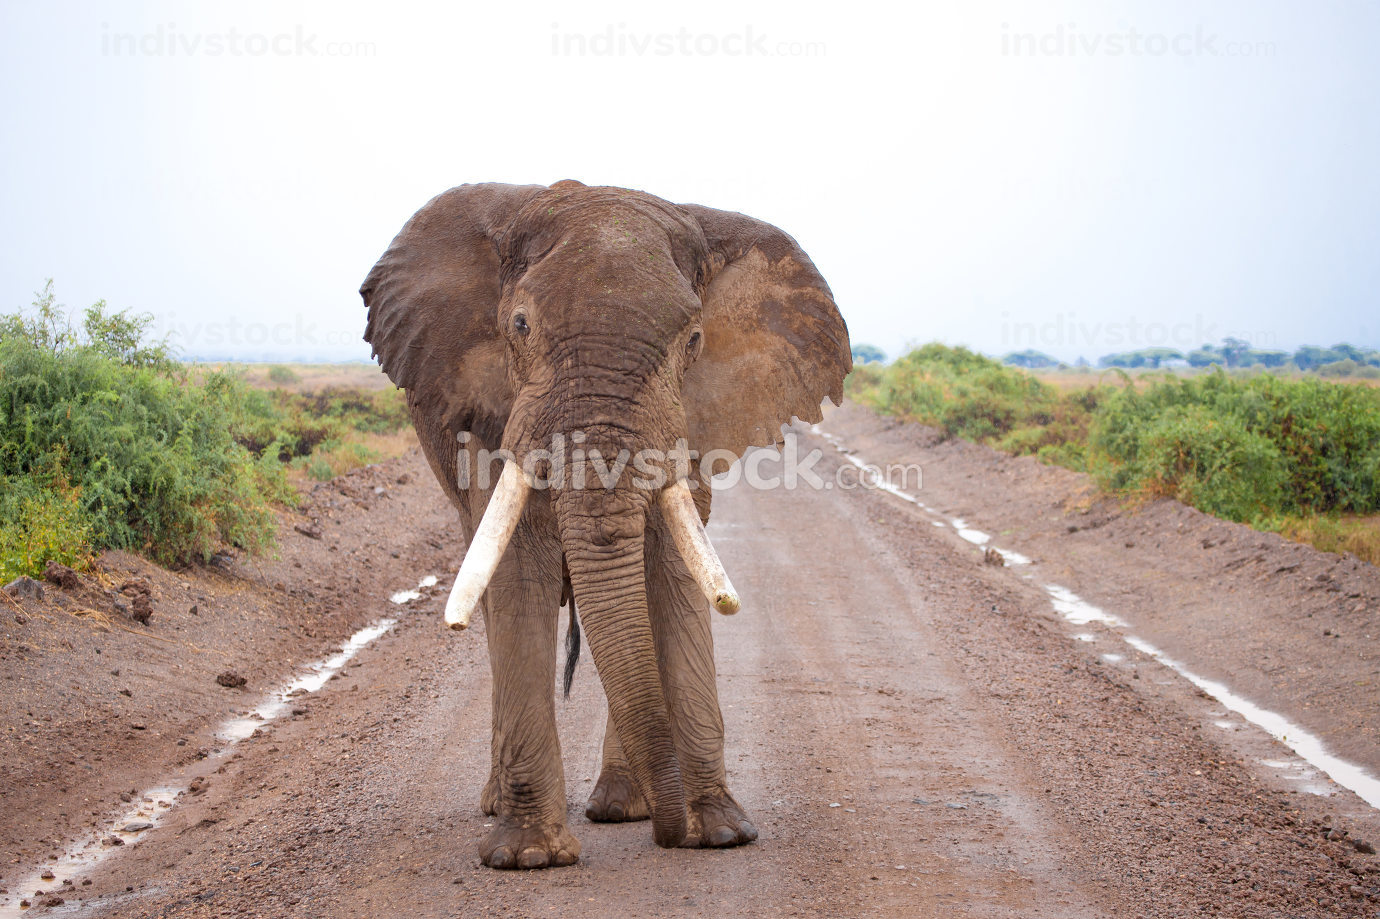 One big elephant is standing on the road, on safari in Kenya